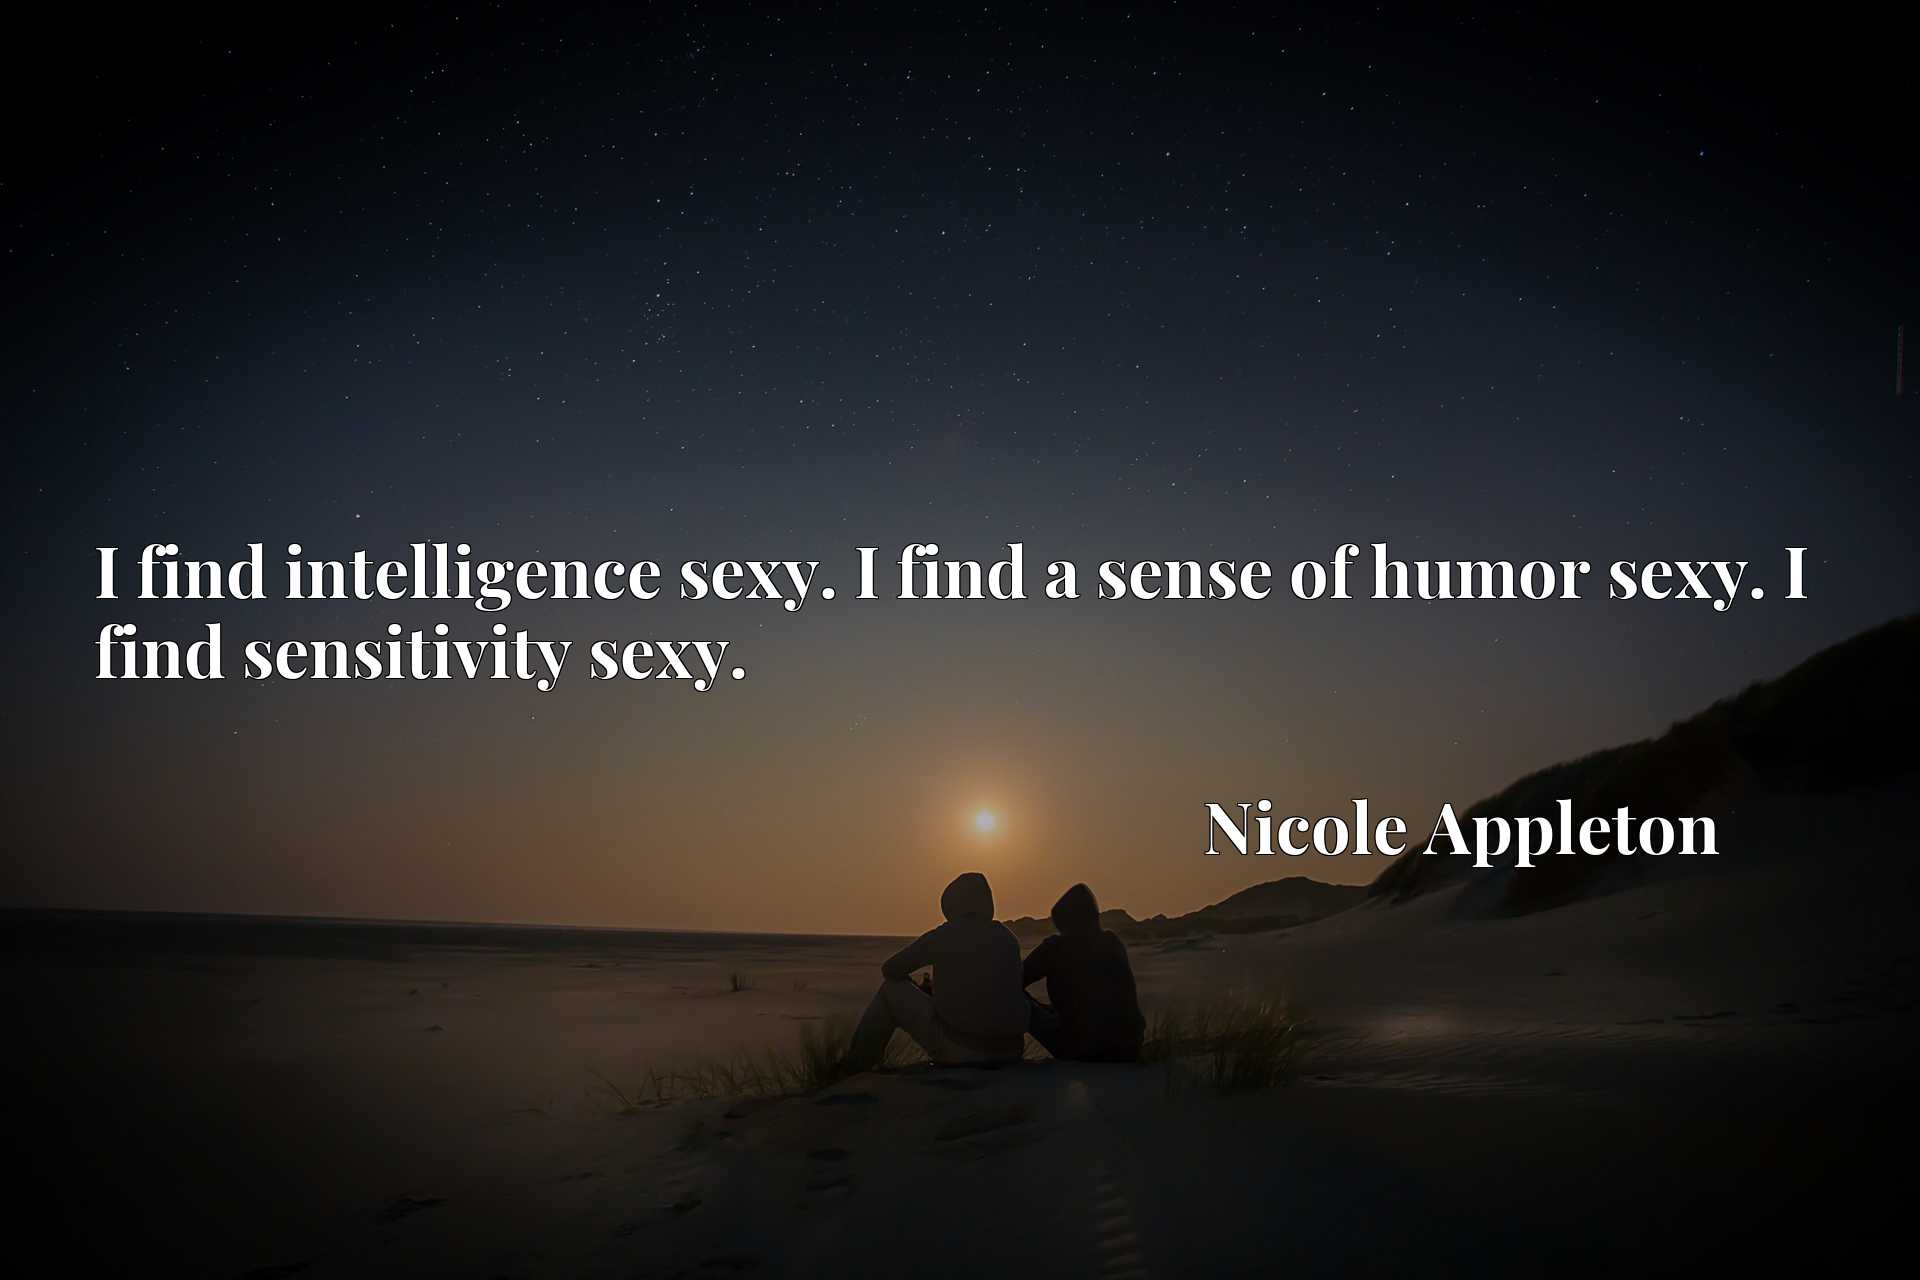 I find intelligence sexy. I find a sense of humor sexy. I find sensitivity sexy.